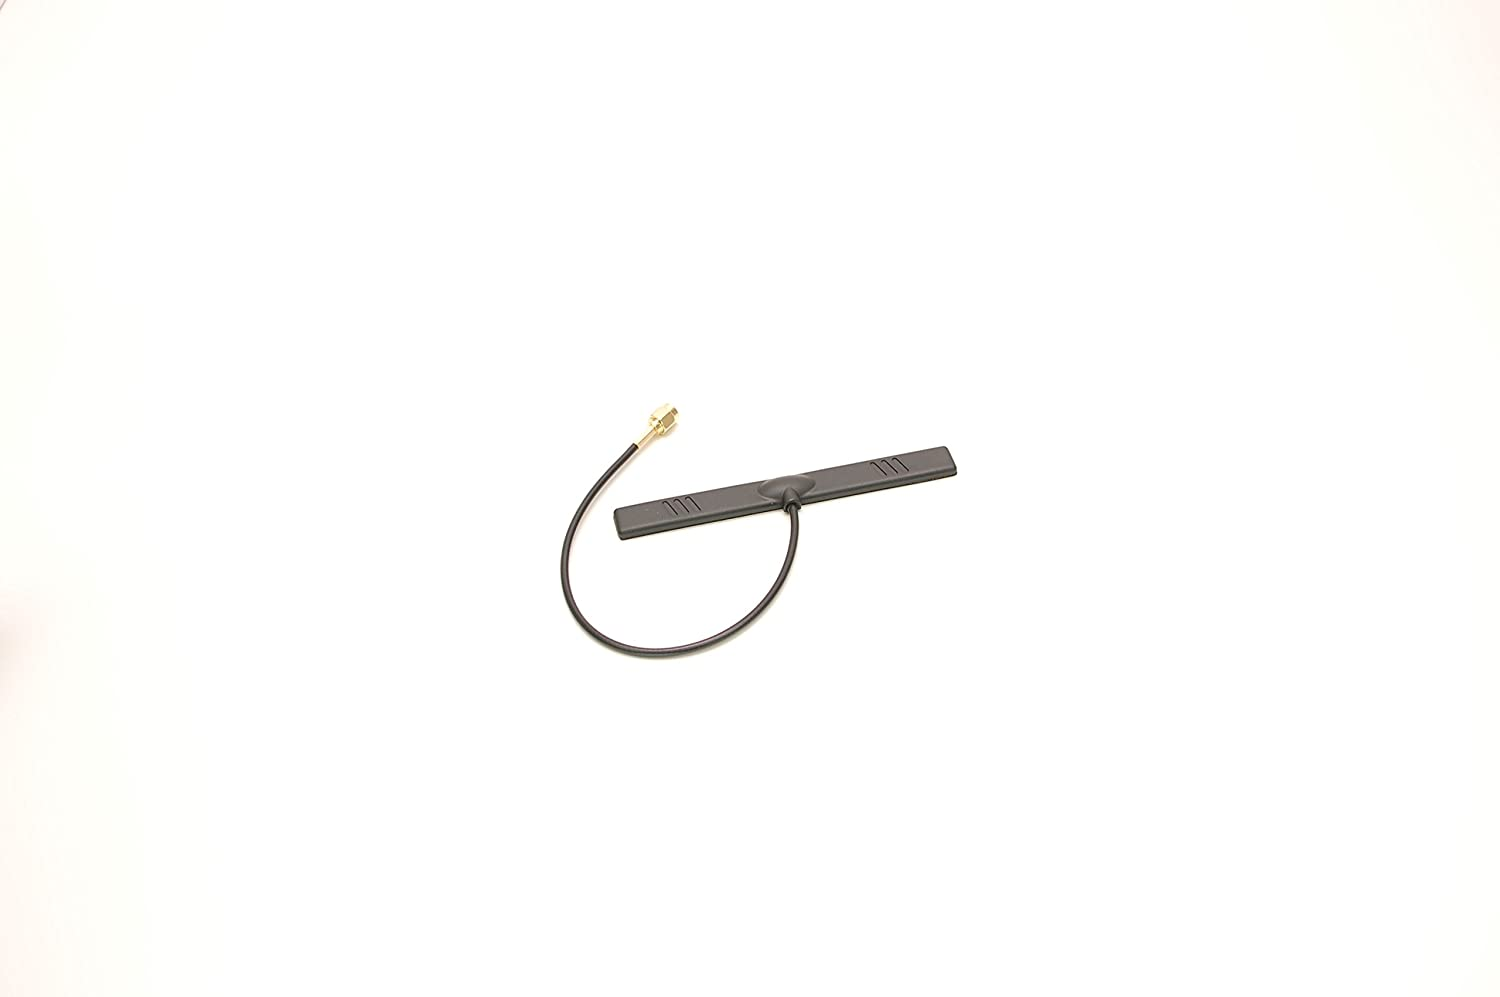 Antenne fü r Glasbefestigung, Multiband, SMA Male, RG174 Cable Length 20 cm LTE 800/1800/2600 MPS 824-894MHz / GSM 900 MHz/UMTS 2.1 GHz/Wifi / Bluetooth 2.4 GHz/PCN 1800 MHz/DCS 1900 MHz/DCS Alda PQ®